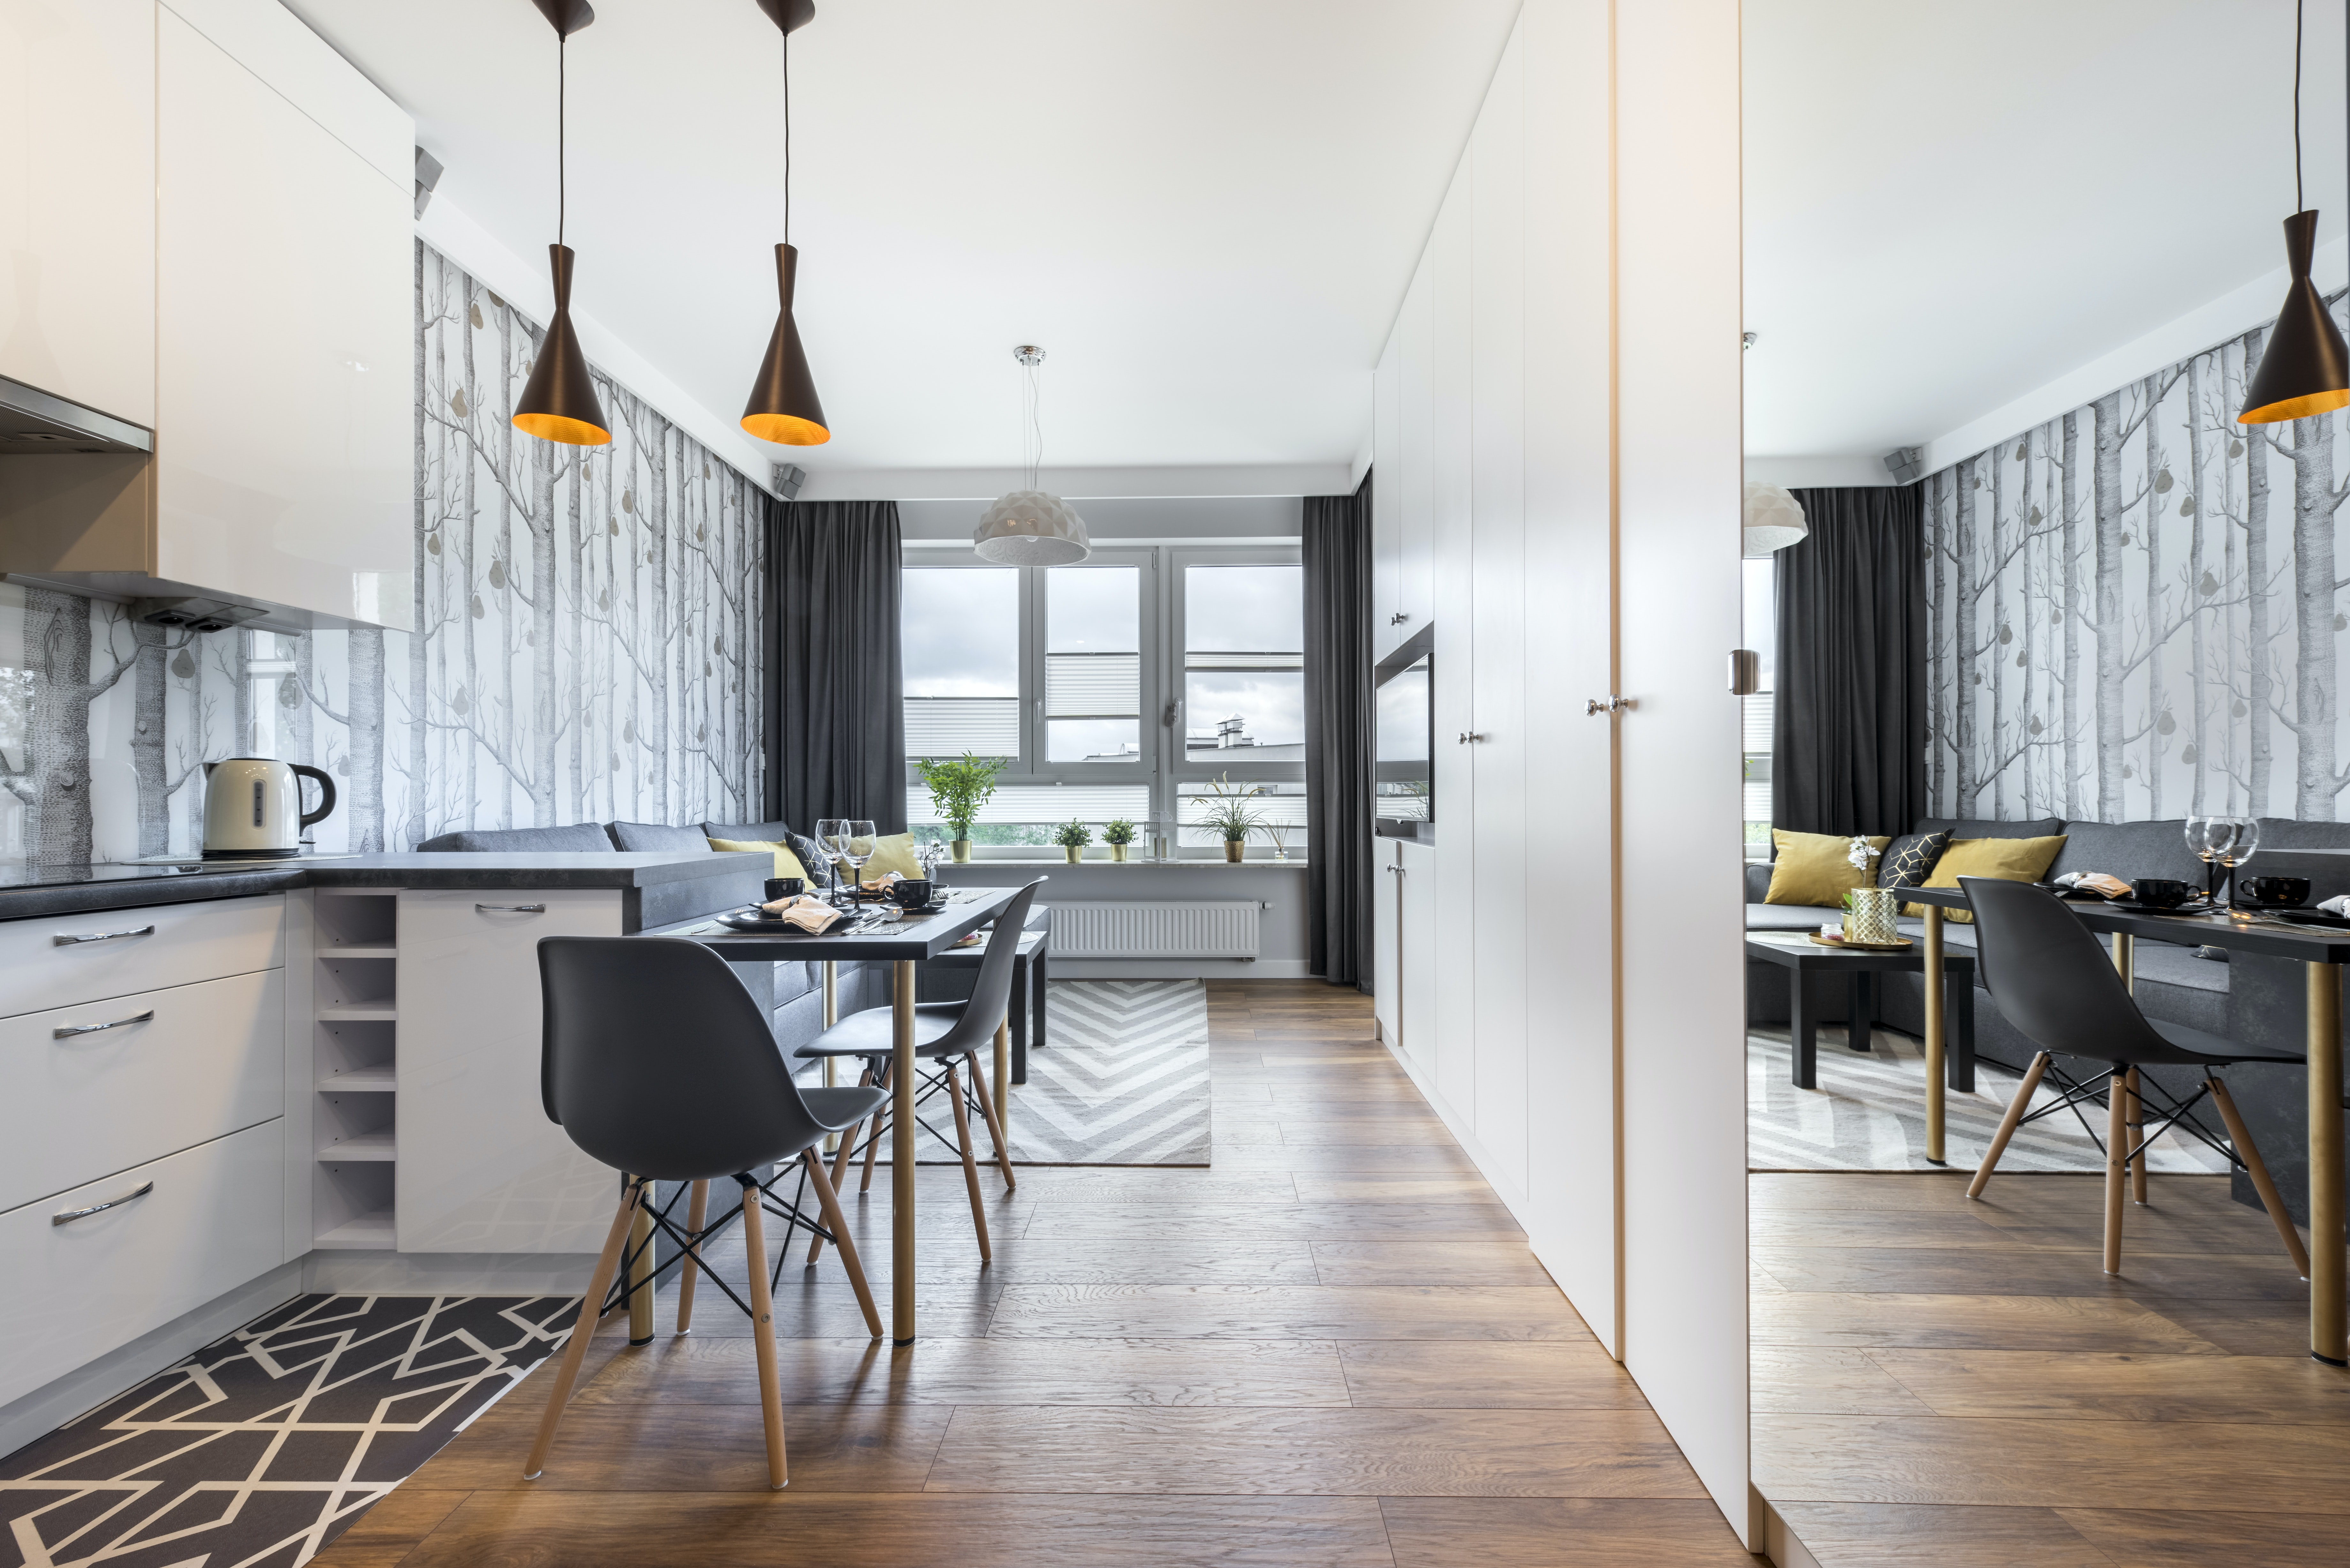 Image result for Live in a small place? An interior designer's tips to create the illusion of space